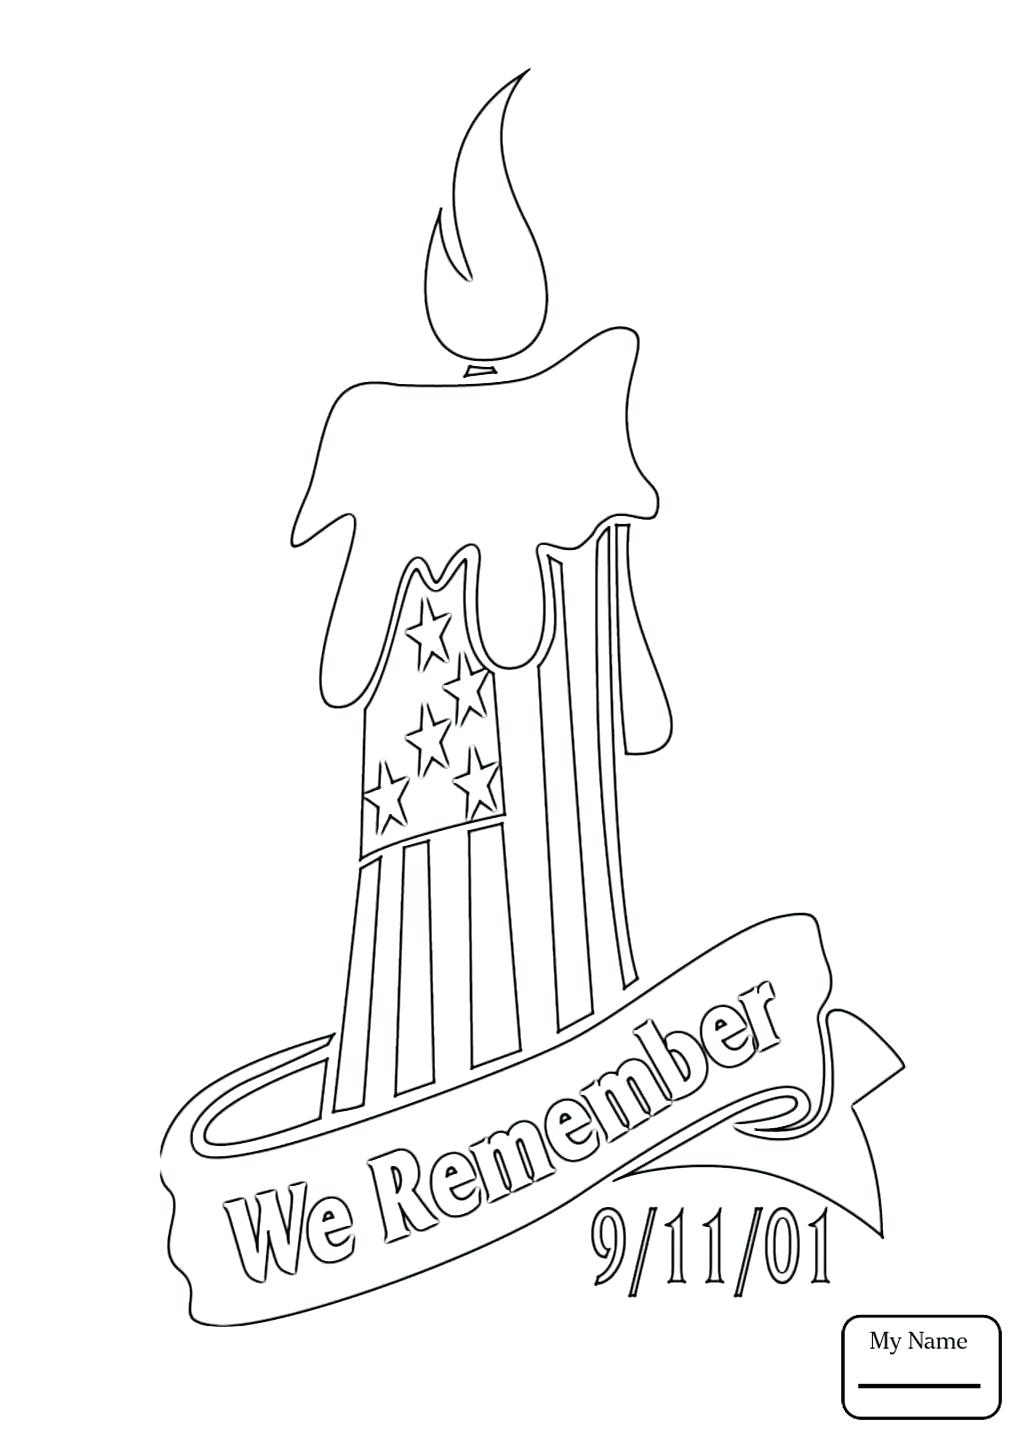 1020x1442 Coloring Patriot Day Coloring Pages Good Patriots. Patriot Day